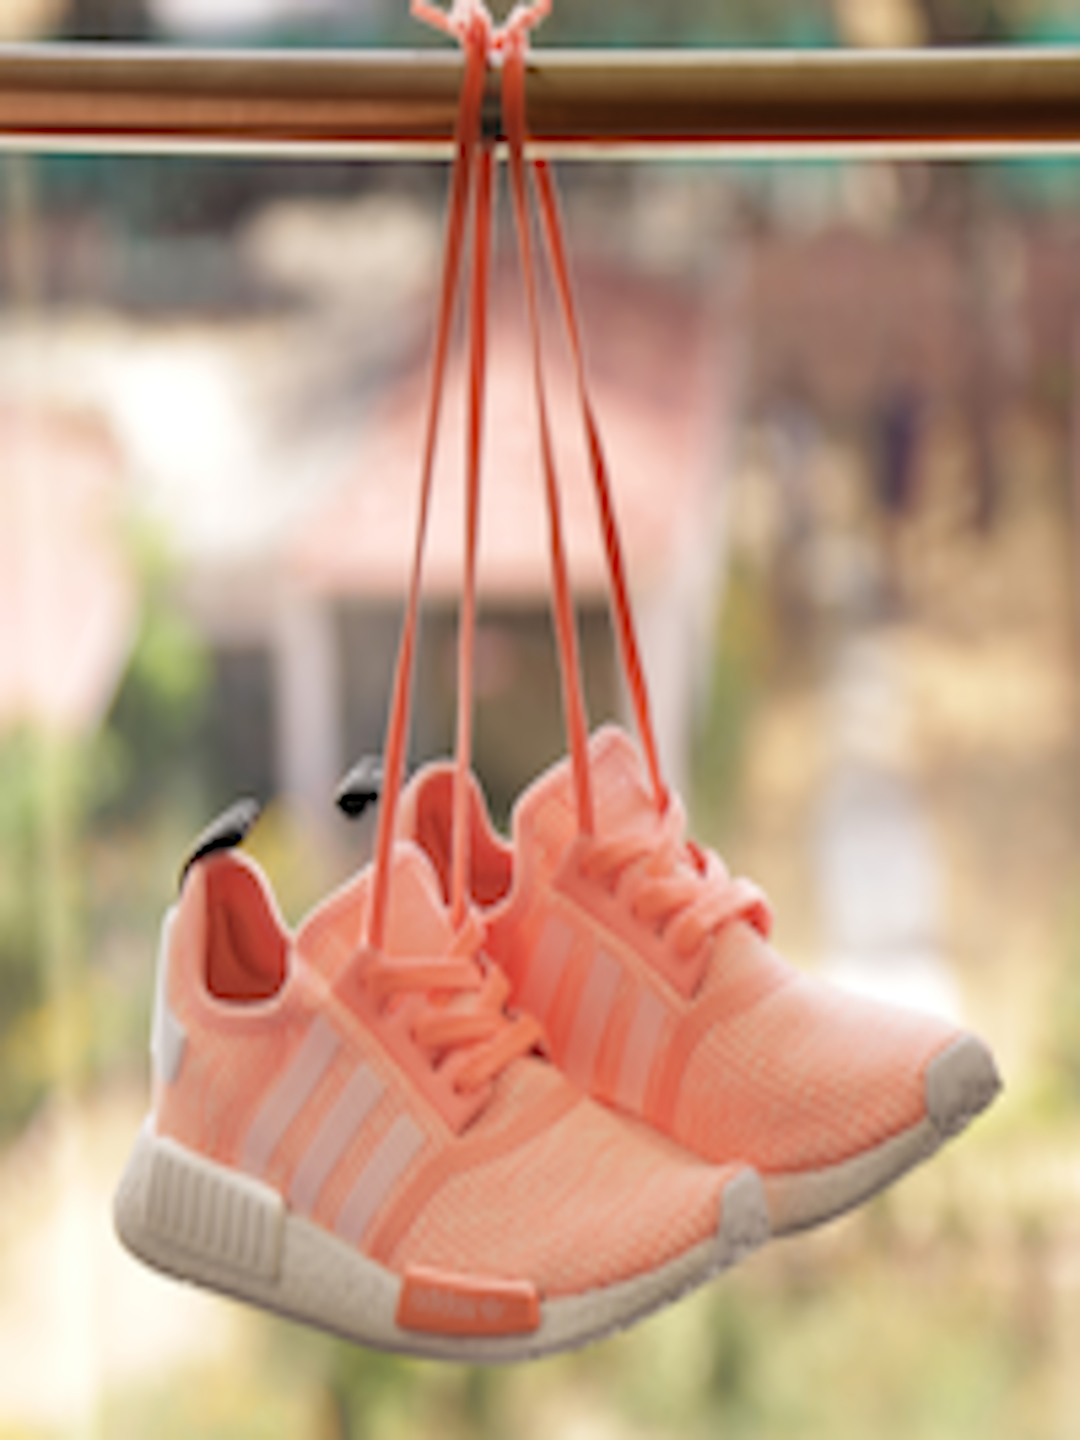 146d03e0a76d4 Buy ADIDAS Originals Women Peach Coloured NMD R1 W Woven Sneakers - Casual  Shoes for Women 1827824